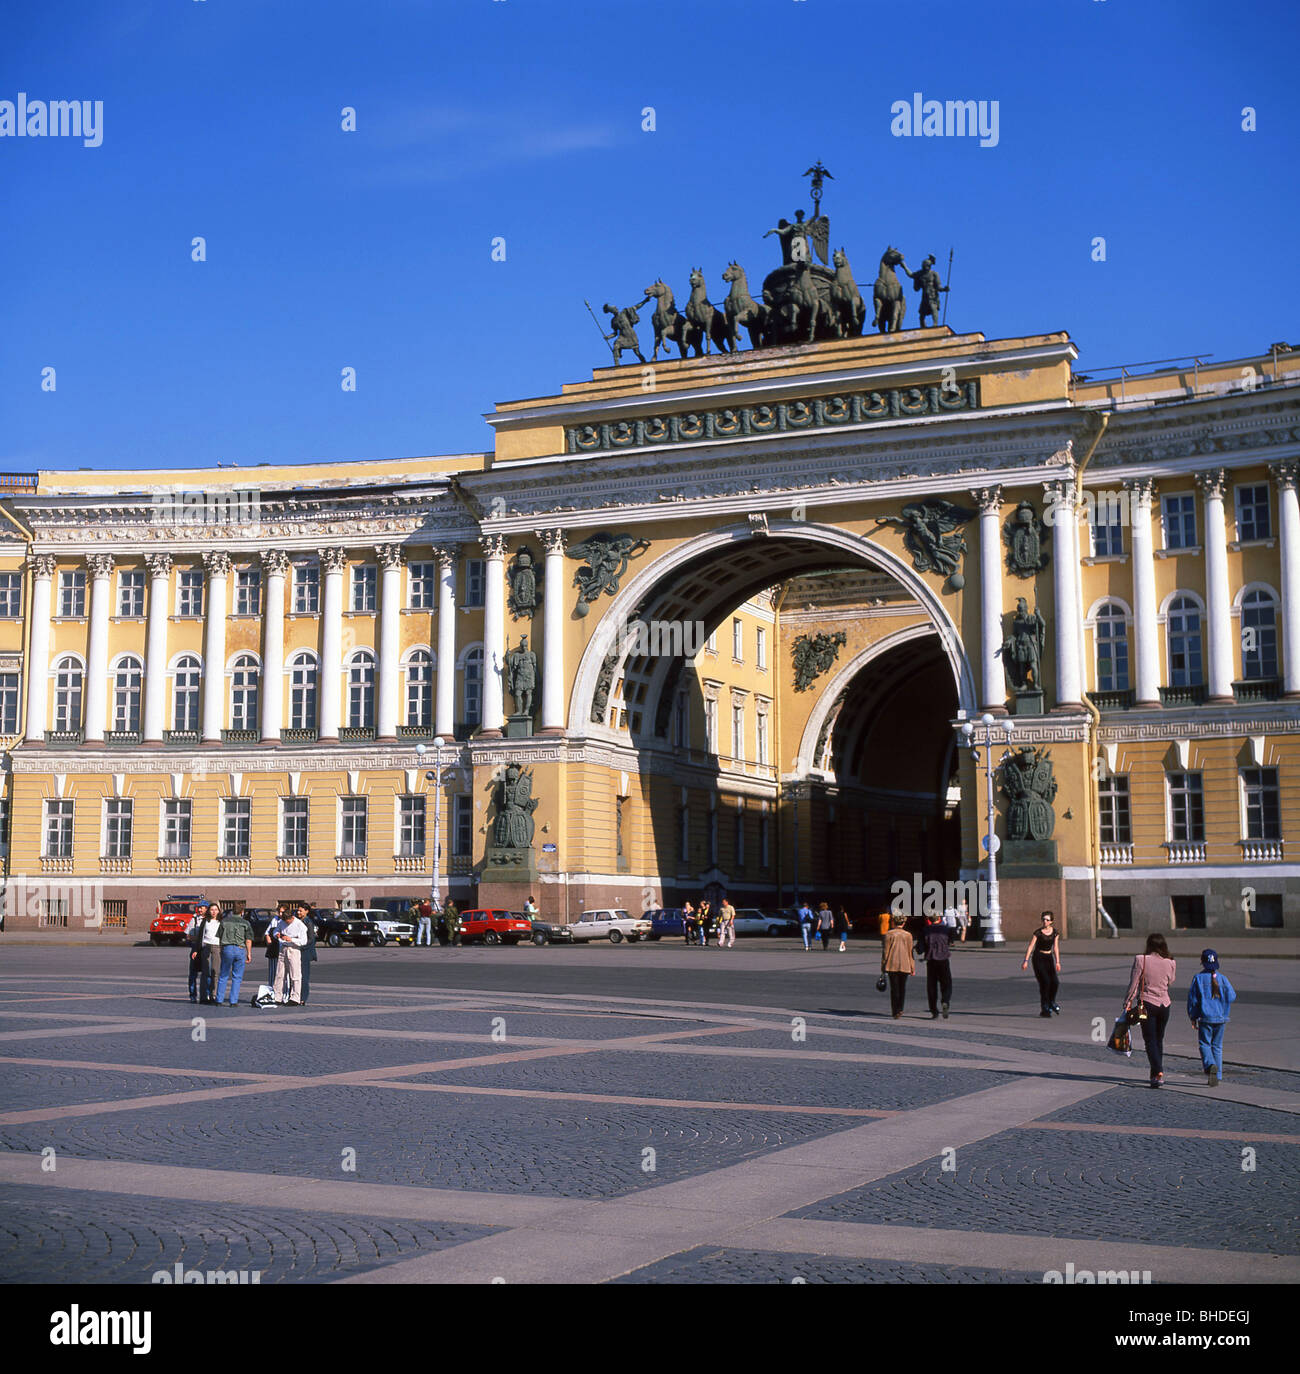 The General Staff Building, Palace Square, Saint Petersburg, Northwestern Region, Russia - Stock Image